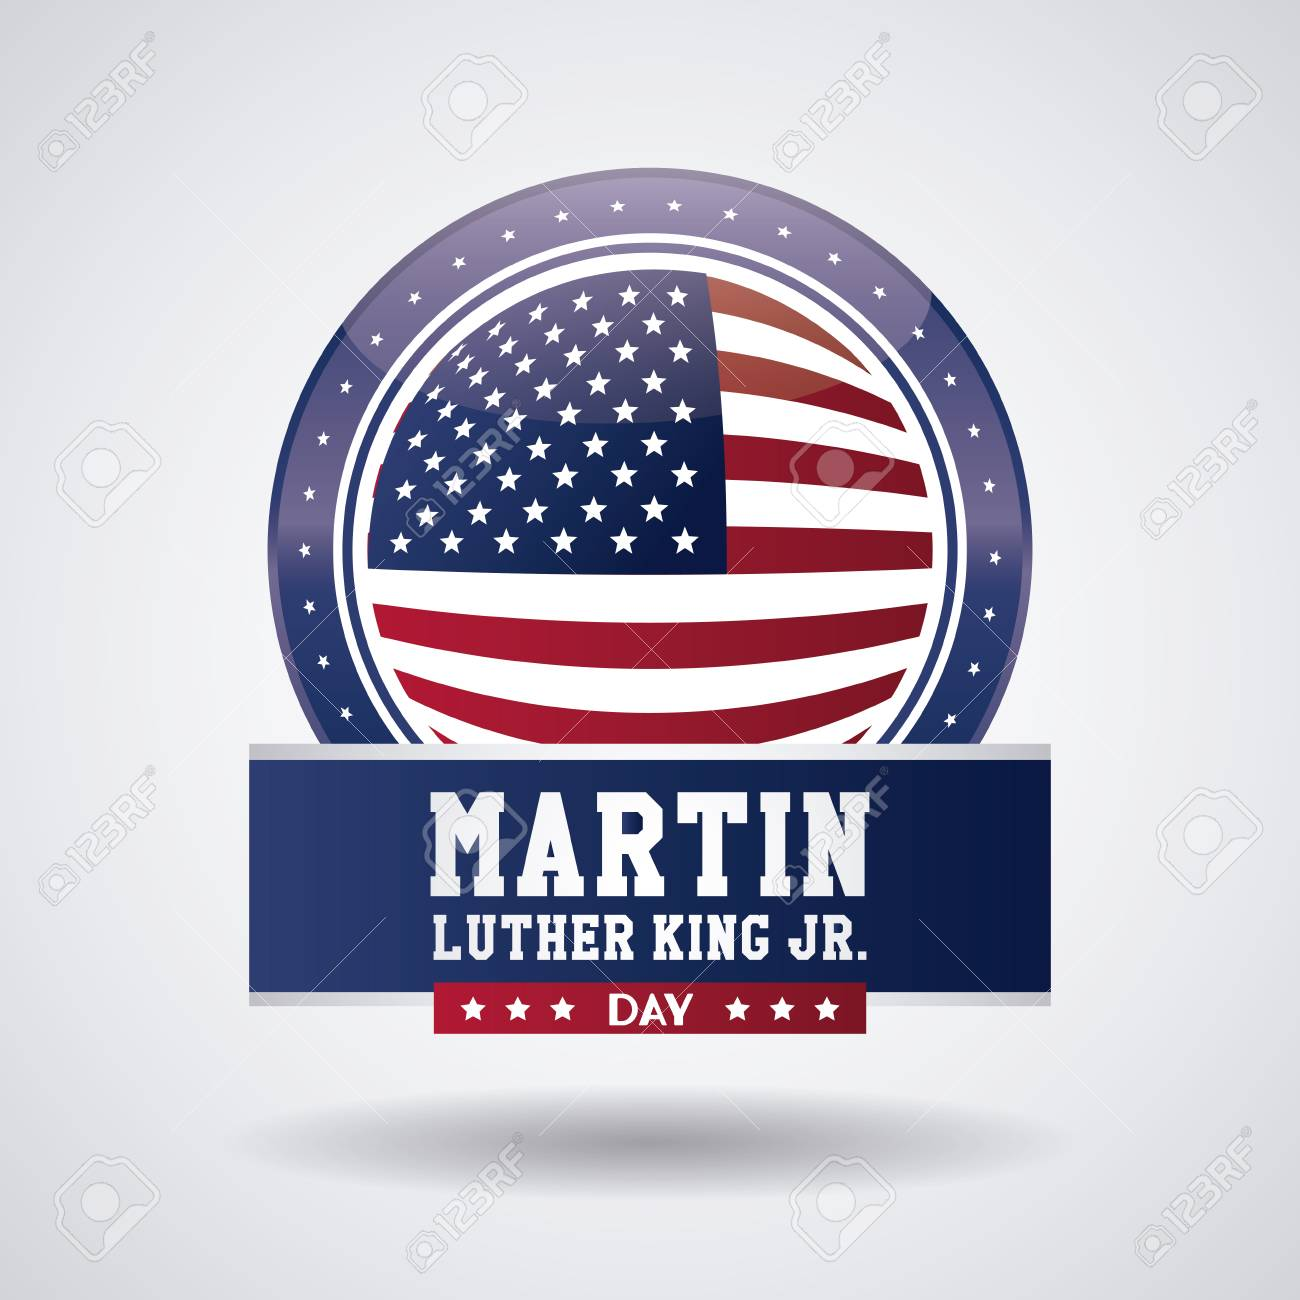 Martin Luther King Jr Day Icon Vector Illustration Graphic Royalty